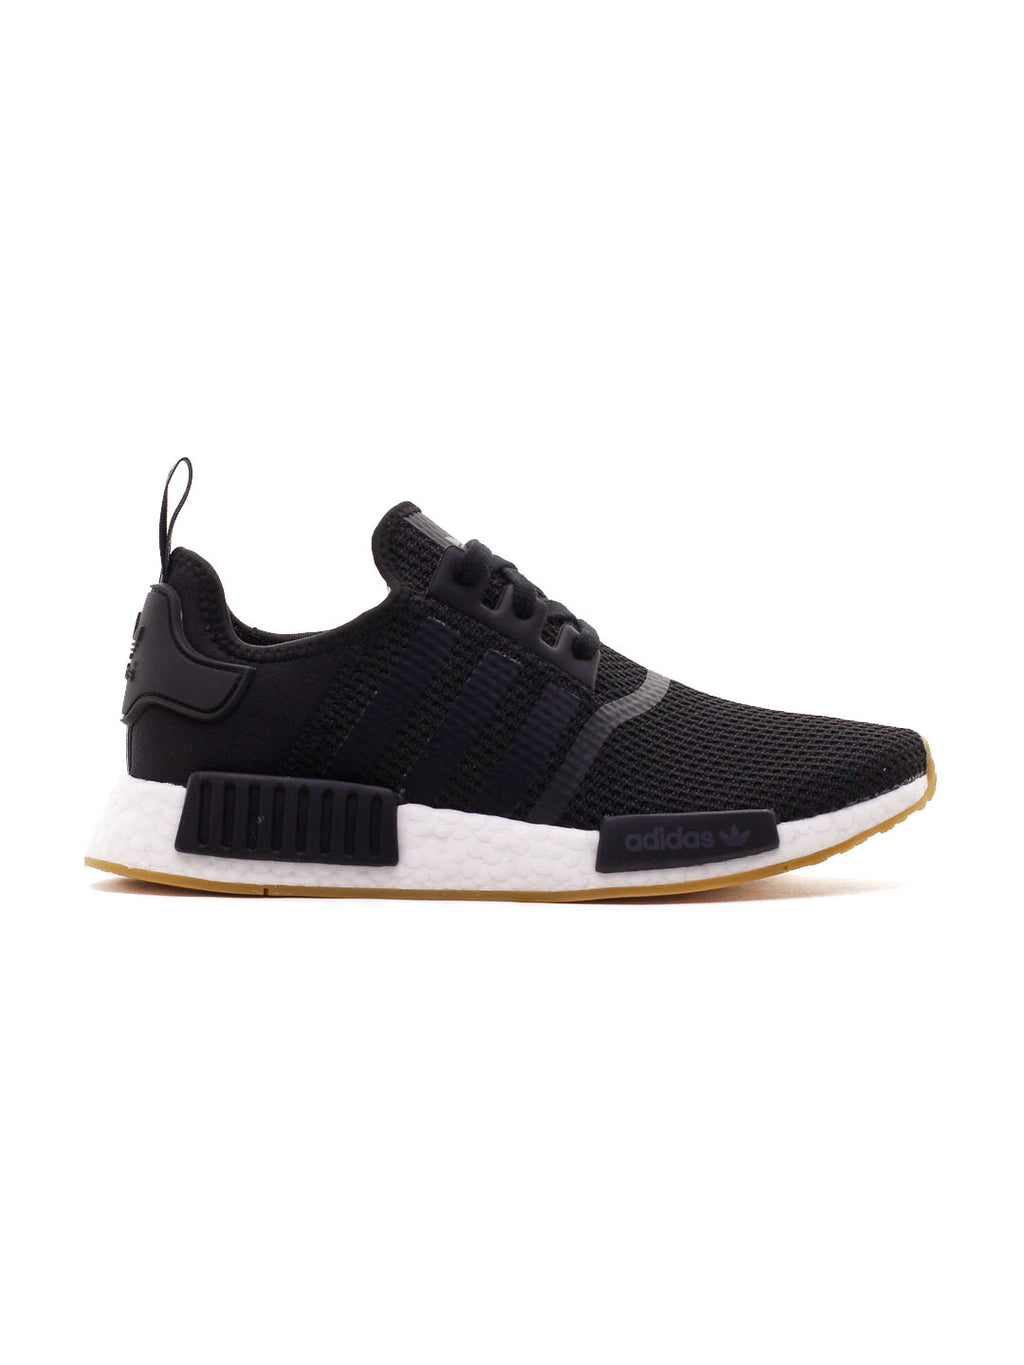 Black & White NMD R1 Boost Sneakers